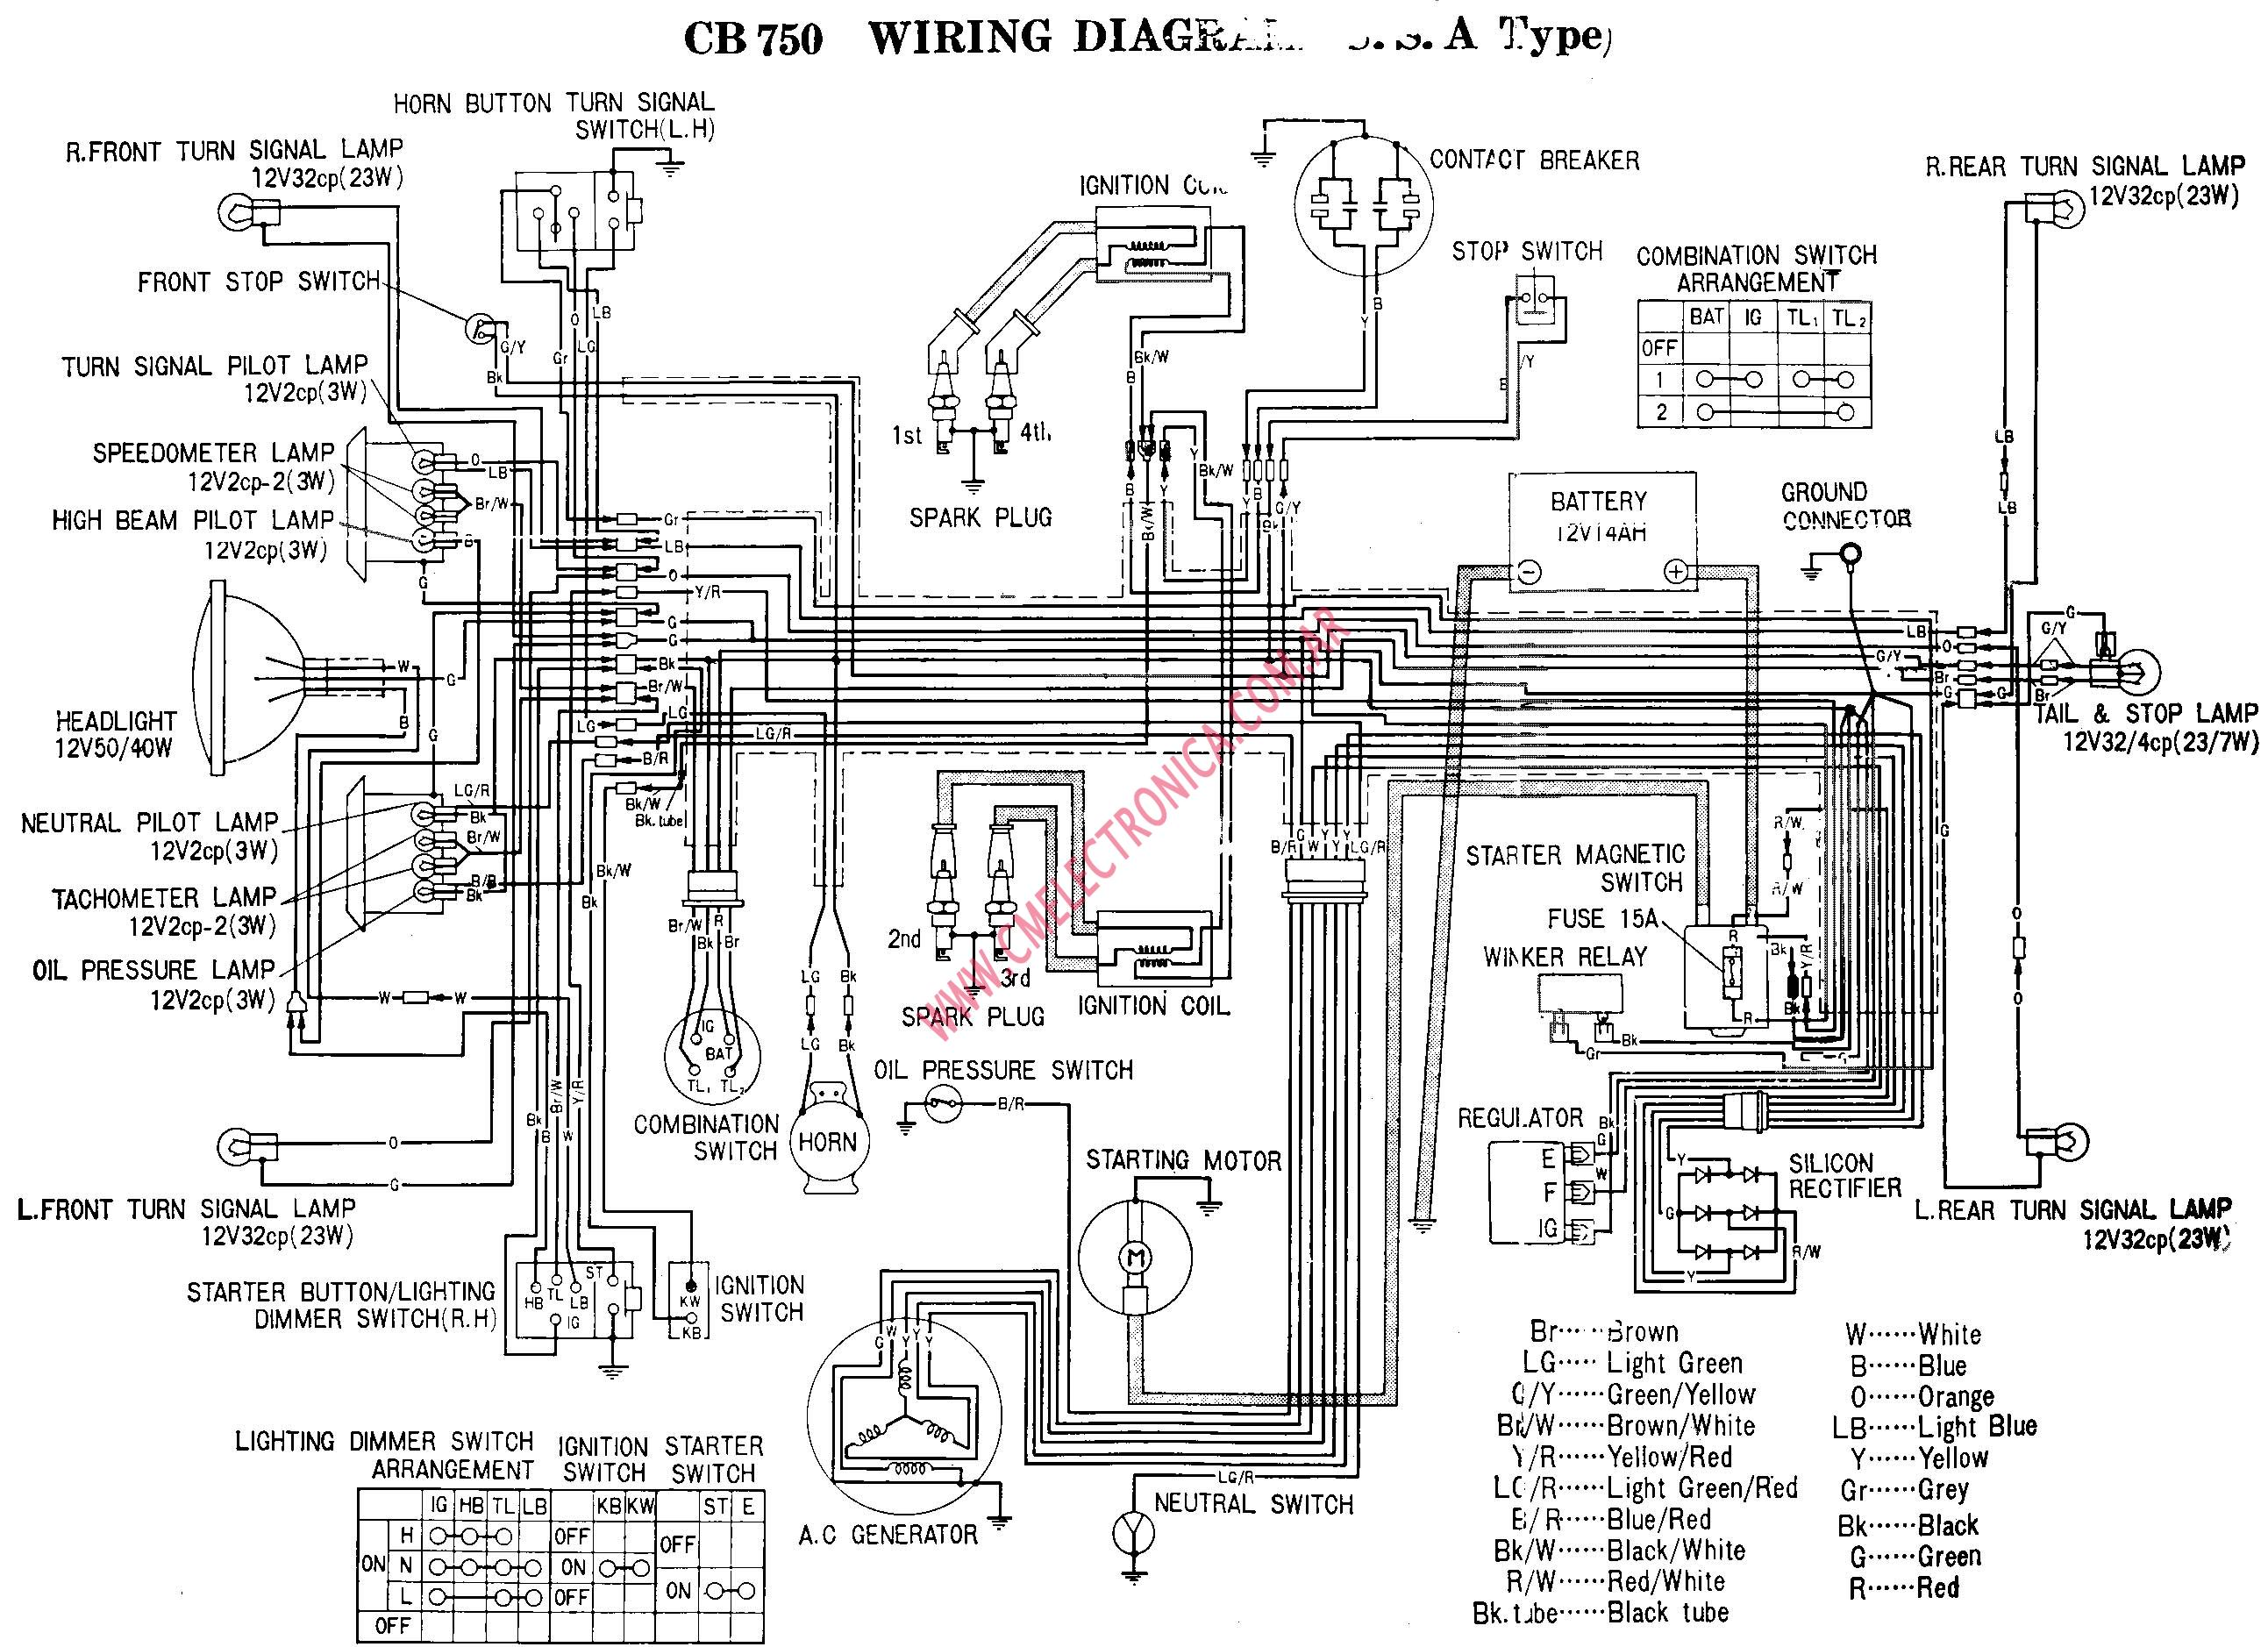 Fuse Box Diagram Chevy Malibu Wagon